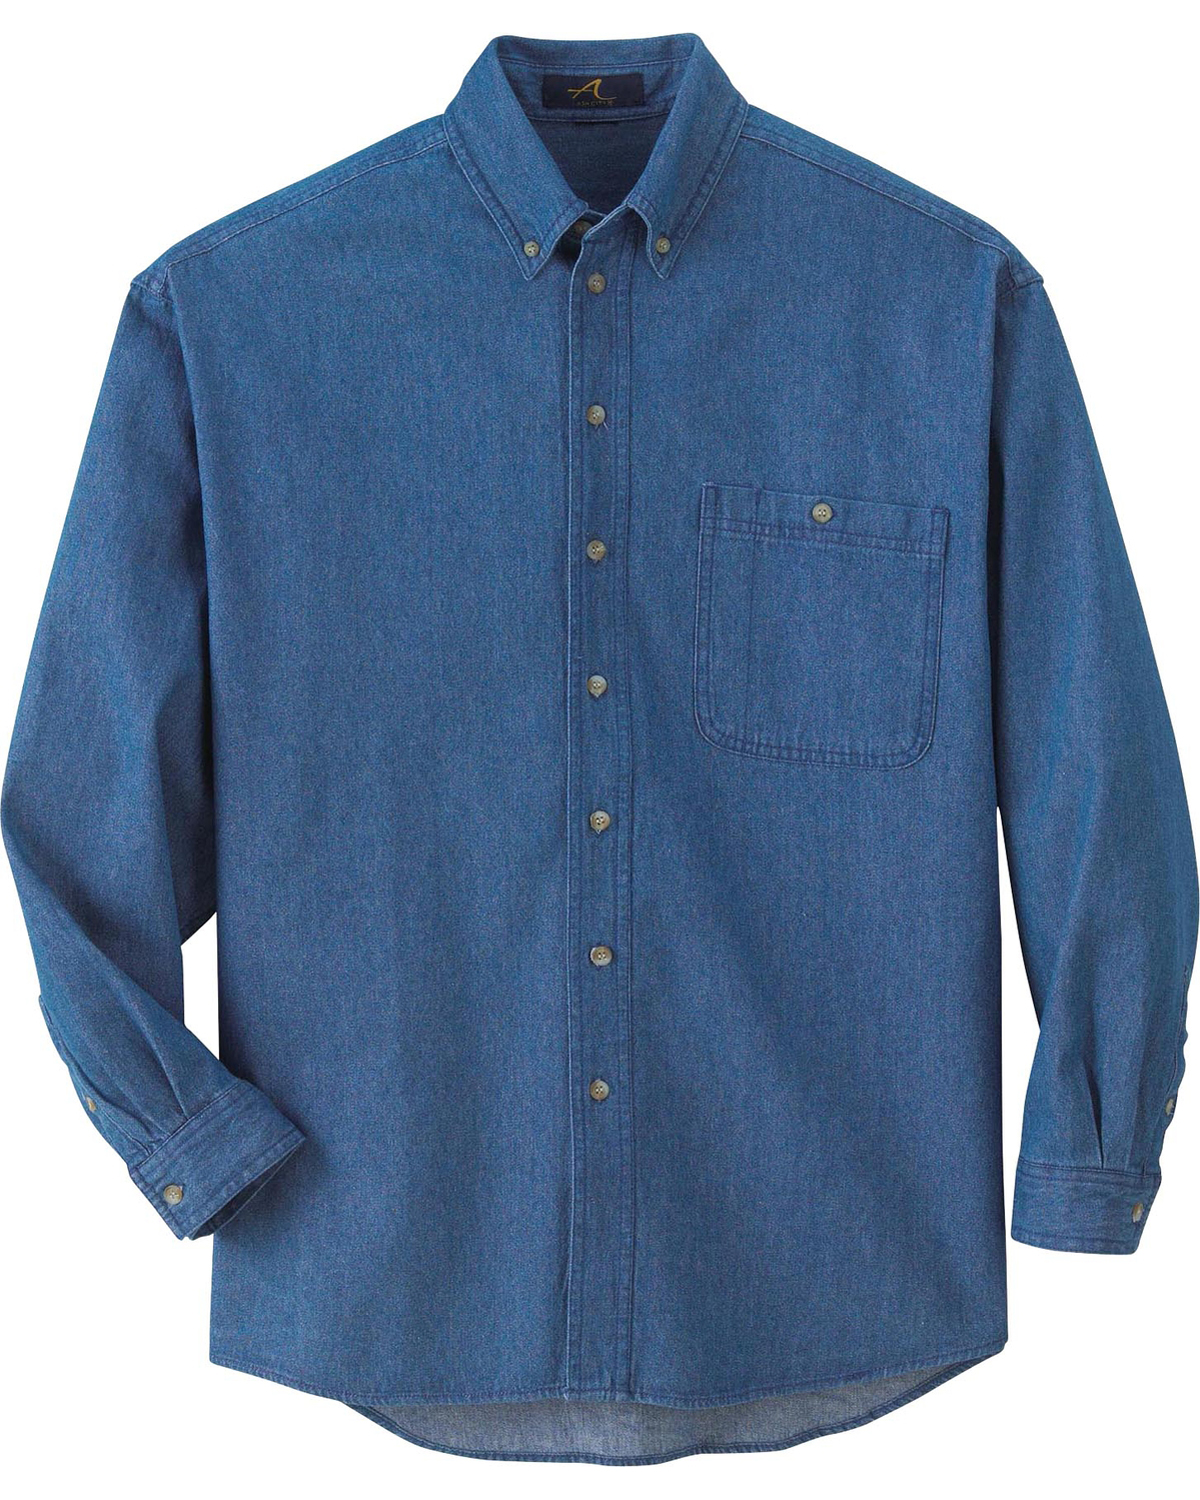 Ash City 88035 - Men's Denim Button-Down Long Sleeve ...